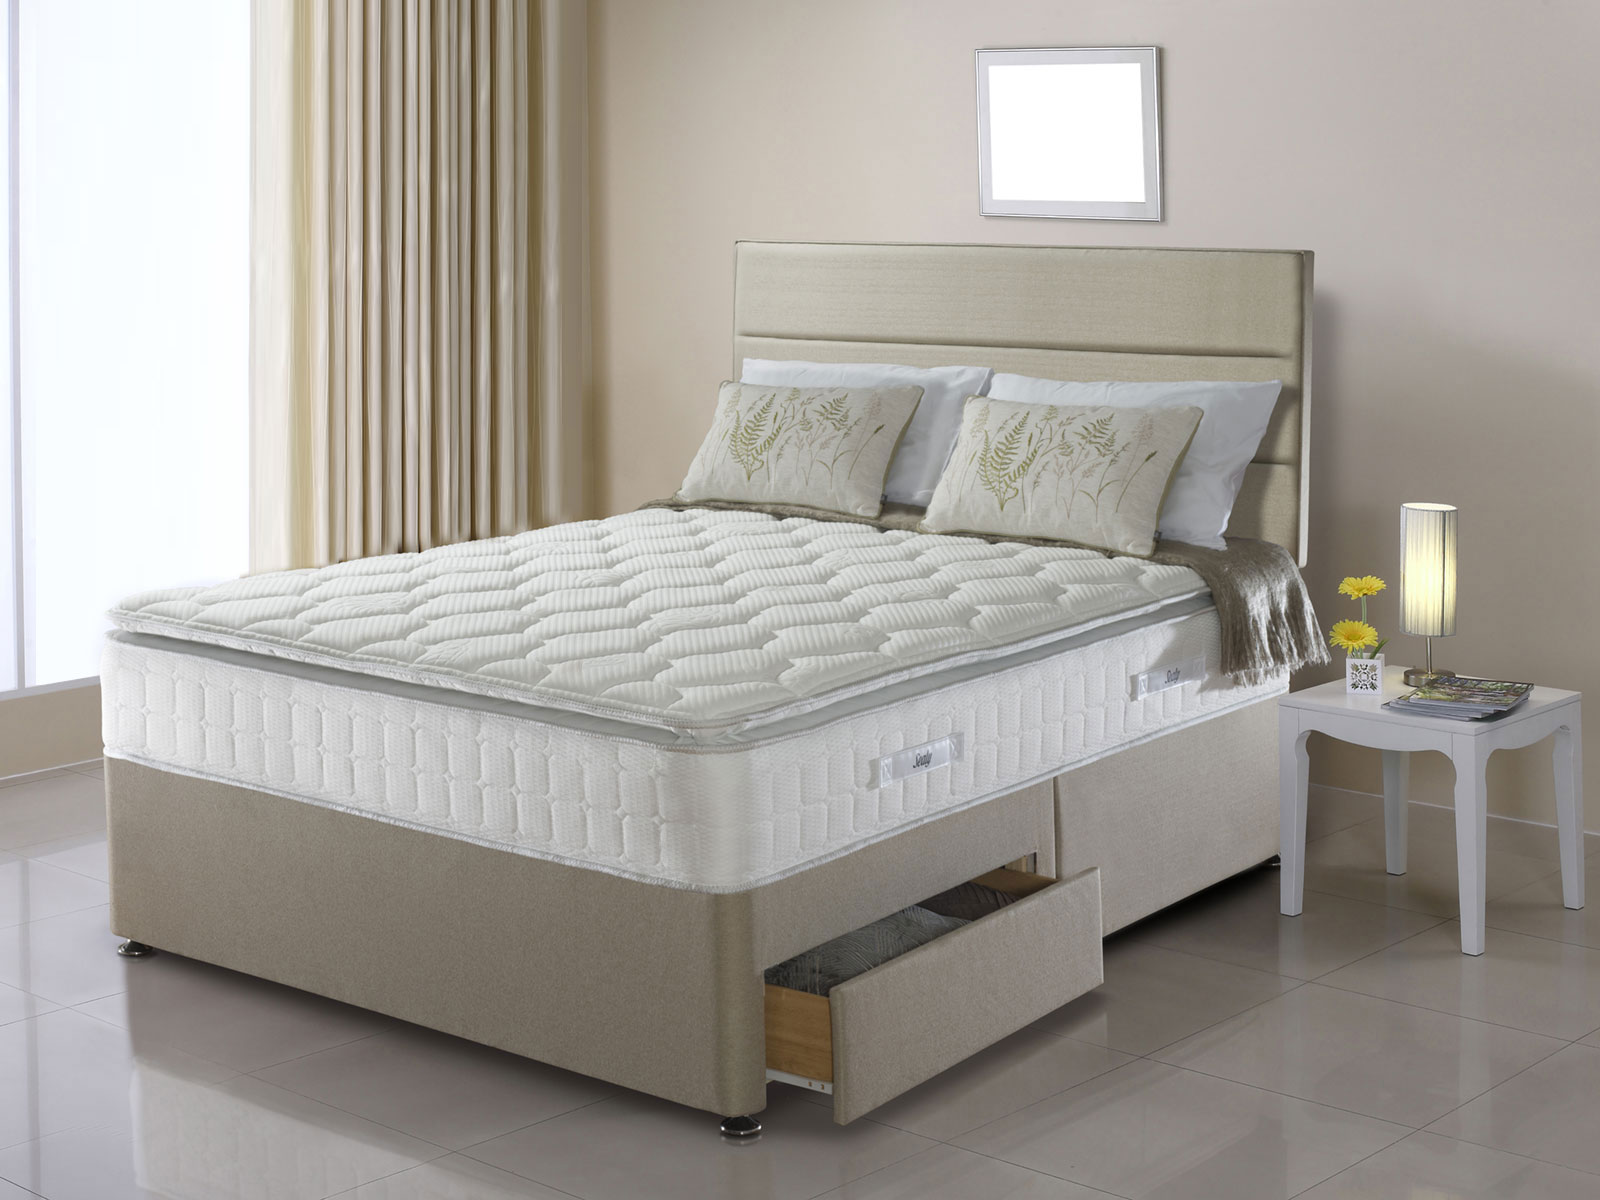 6ft super king size sealy nostromo divan set from the for Super king divan set